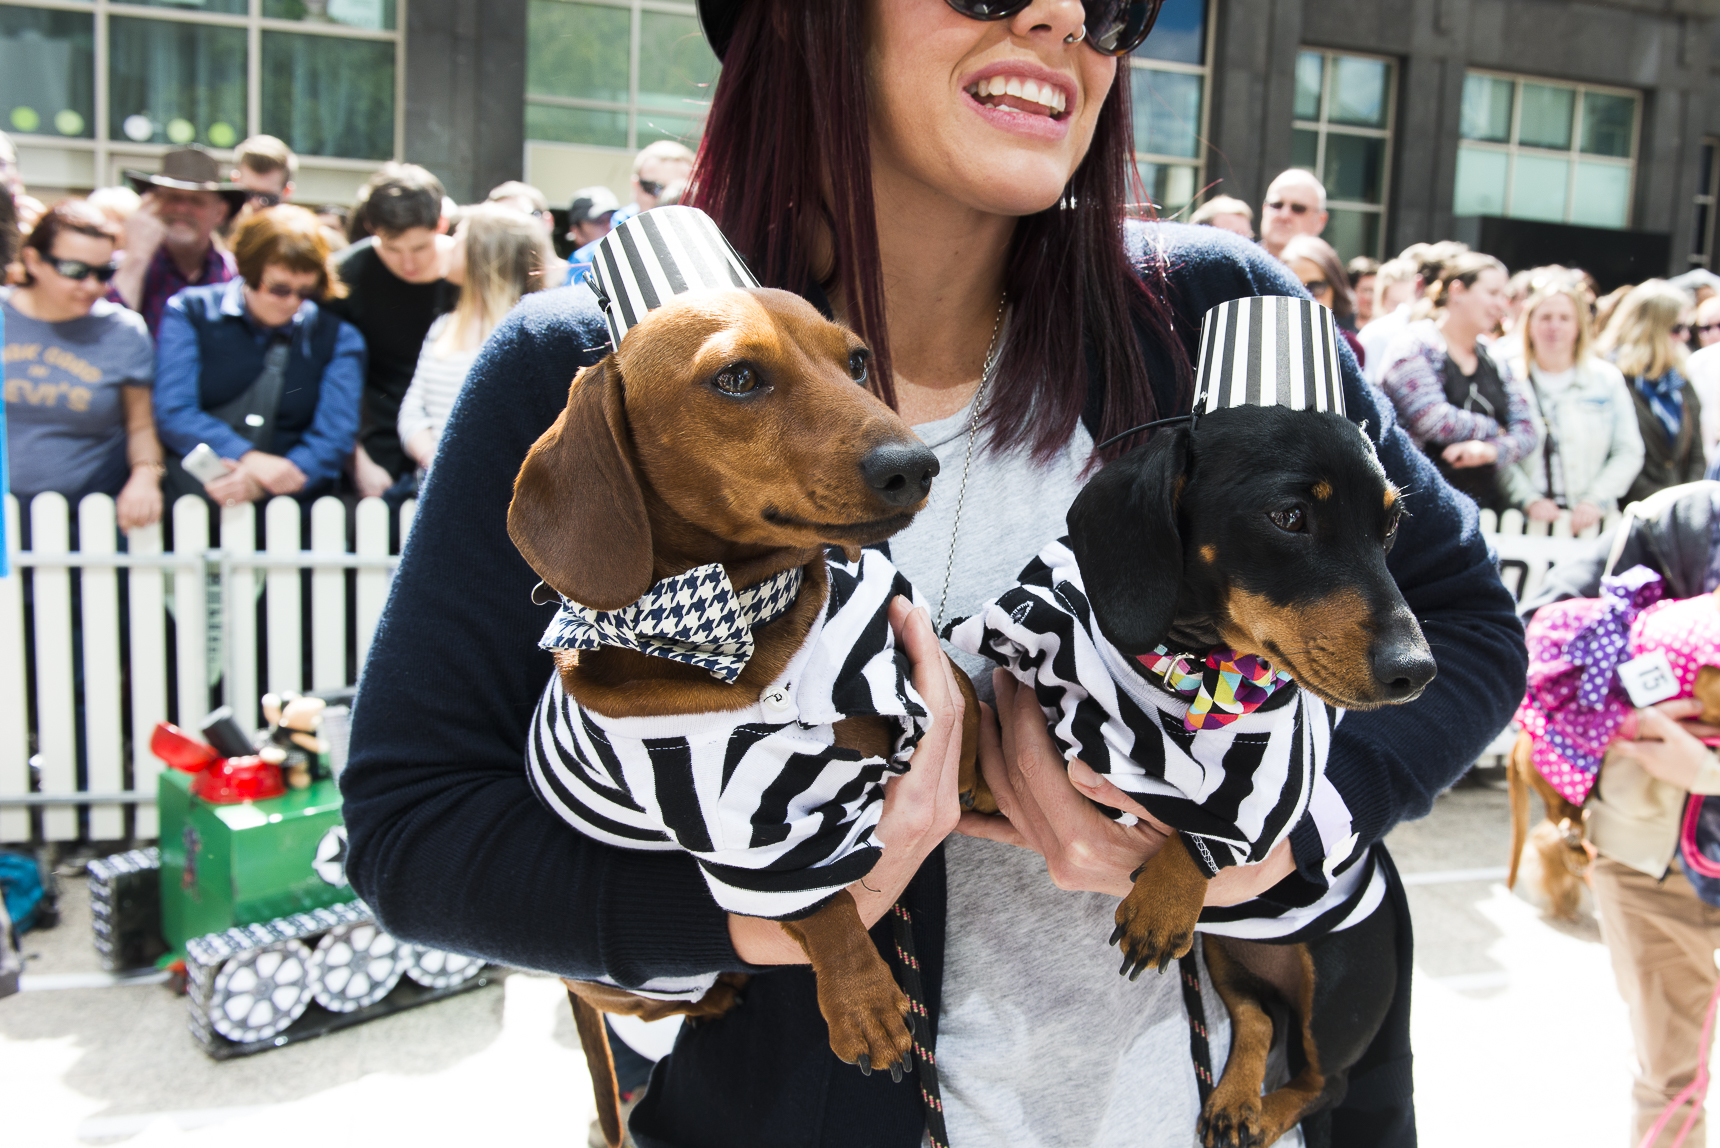 Here are the best dressed dogs at the Annual Dachshund Race